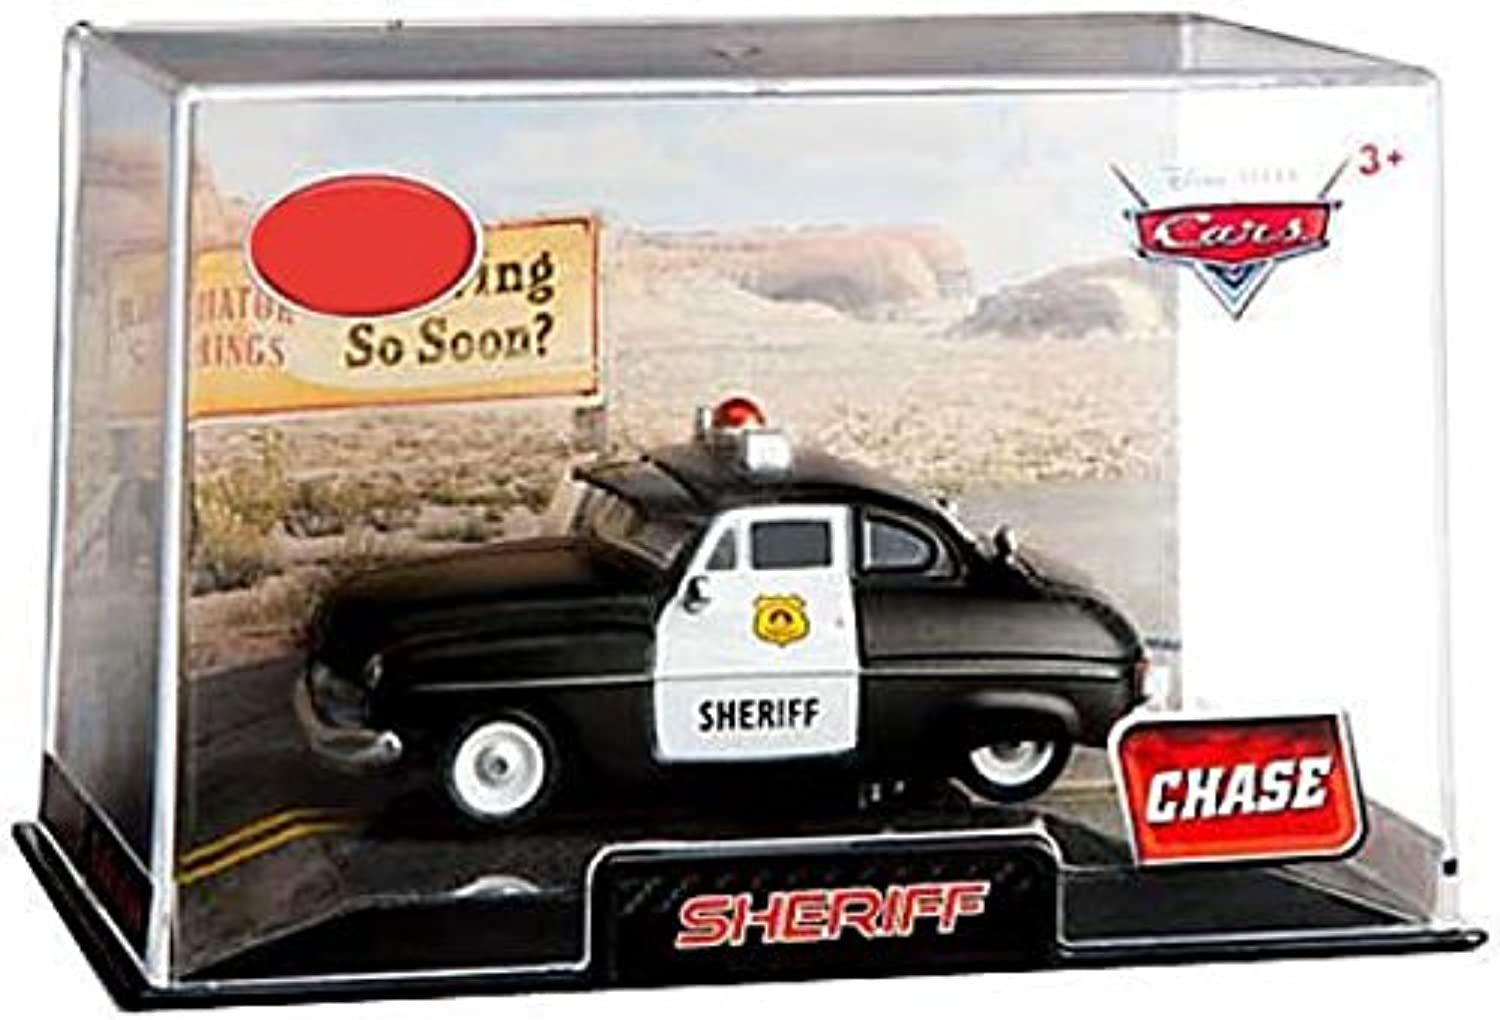 Disney   Pixar CARS Movie Exclusive 1 48 Die Cast Car In Plastic Case Sheriff [Chase Edition] by Disney